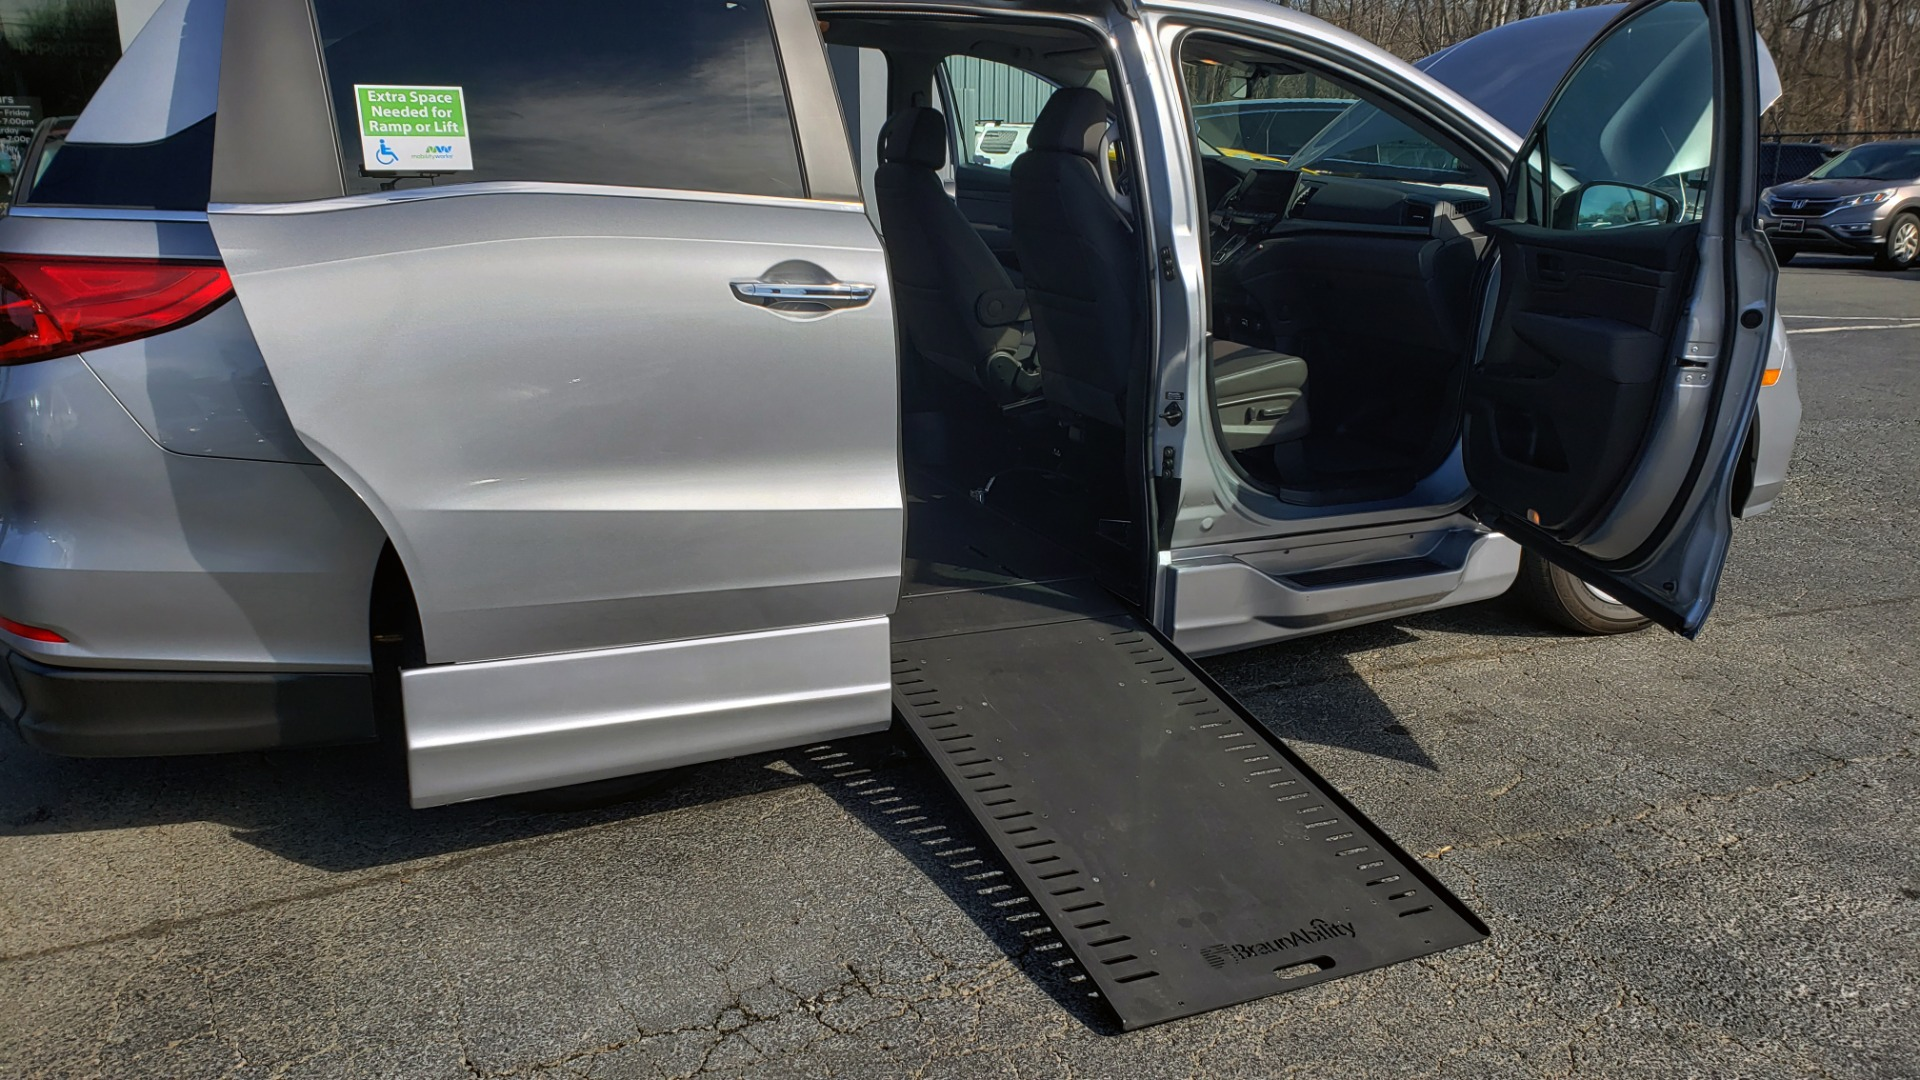 Used 2019 Honda ODYSSEY EX-L BRAUNABILITY / NAV / RES / LKA / BLUE-RAY / SUNROOF / REARVIEW for sale $49,999 at Formula Imports in Charlotte NC 28227 7